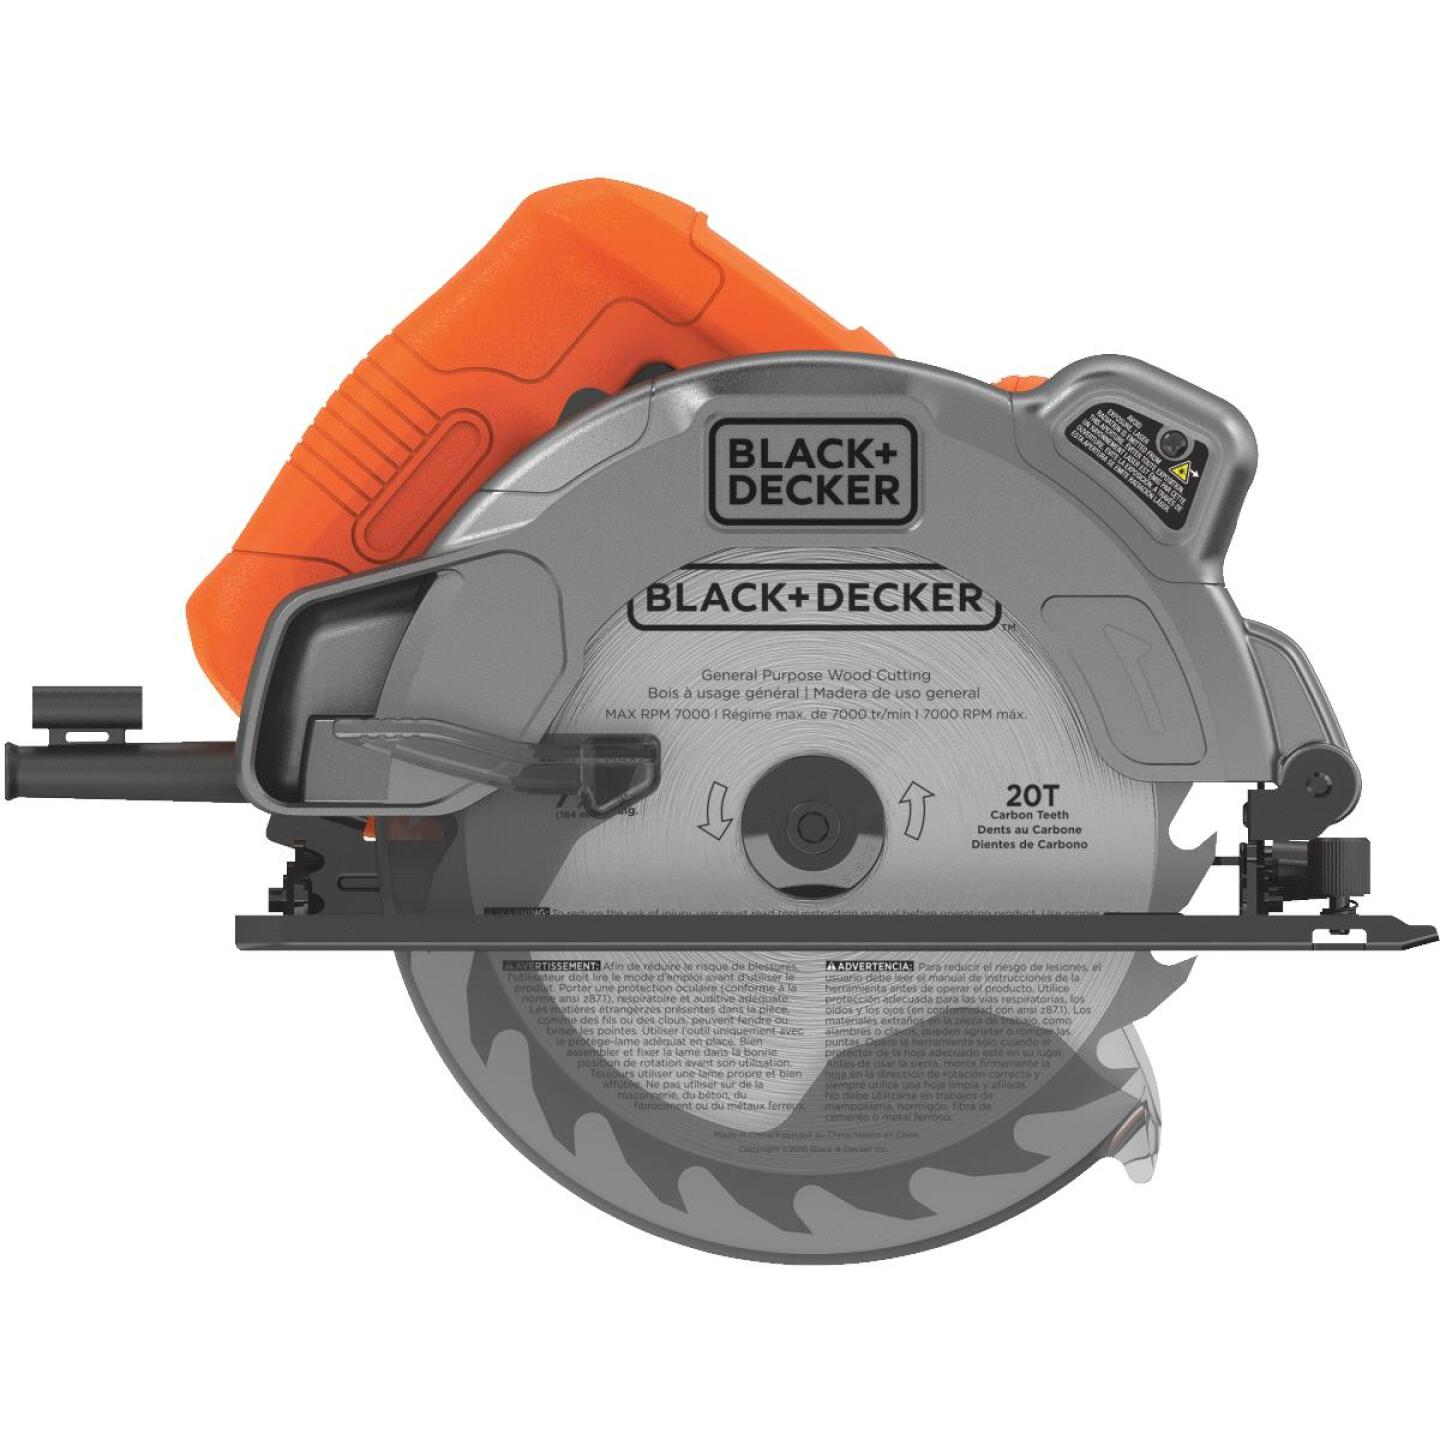 Black & Decker 7-1/4 In. 13-Amp Circular Saw with Laser Image 3